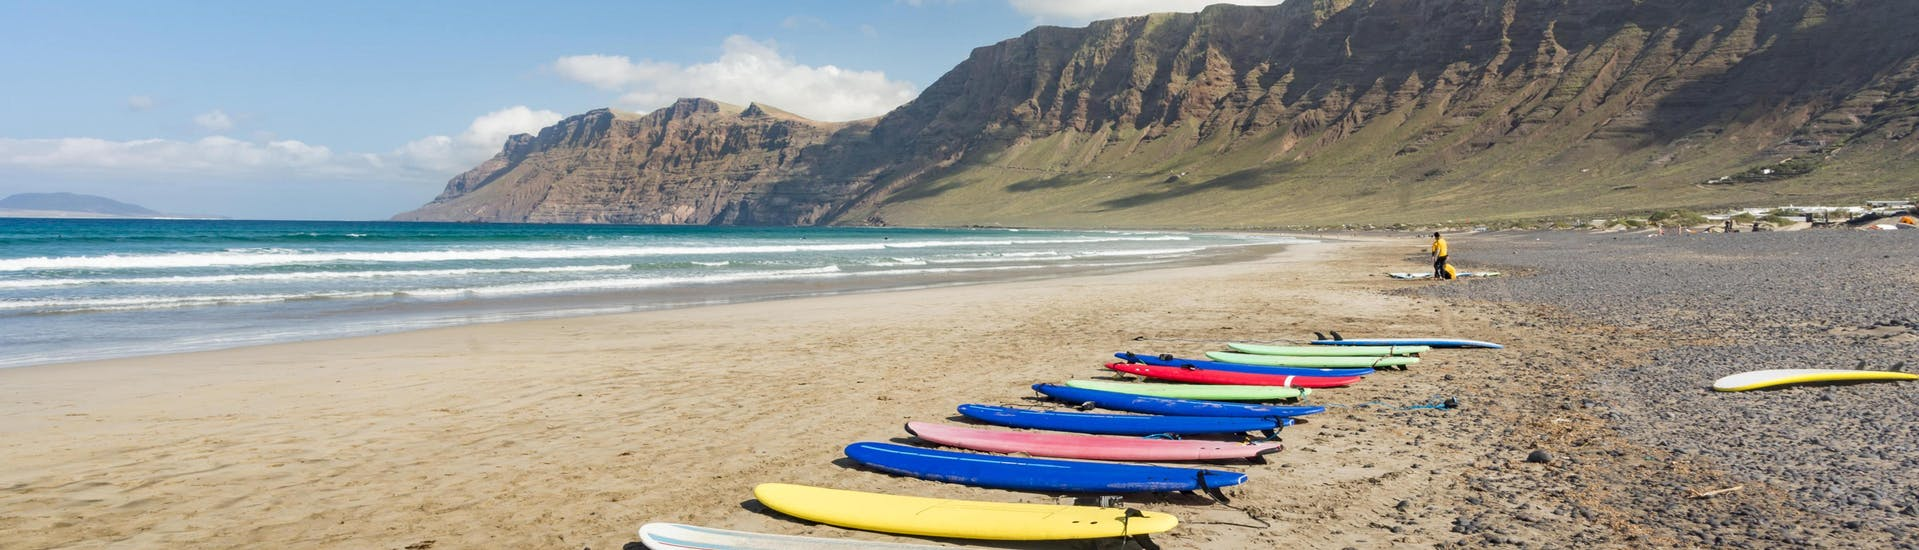 A set of surf boards is lined up on the beach for people to go surfing in Lanzarote.